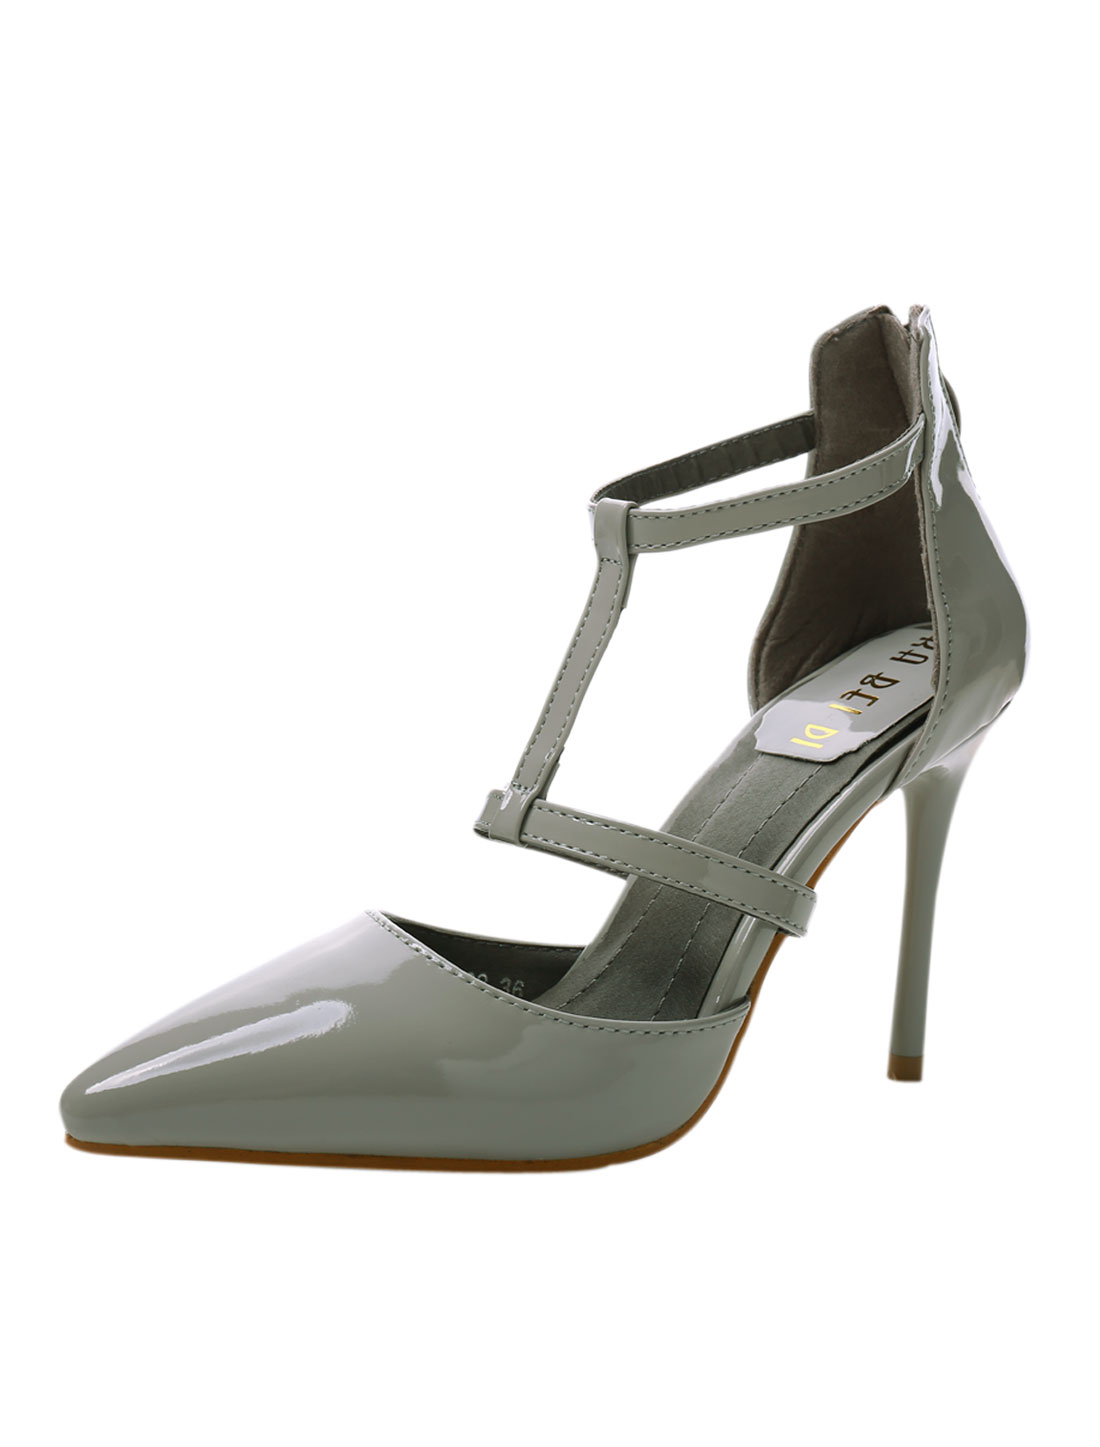 Women Cut Out Strappy Slim Heels Pointed Pumps Light Gray US 6.5